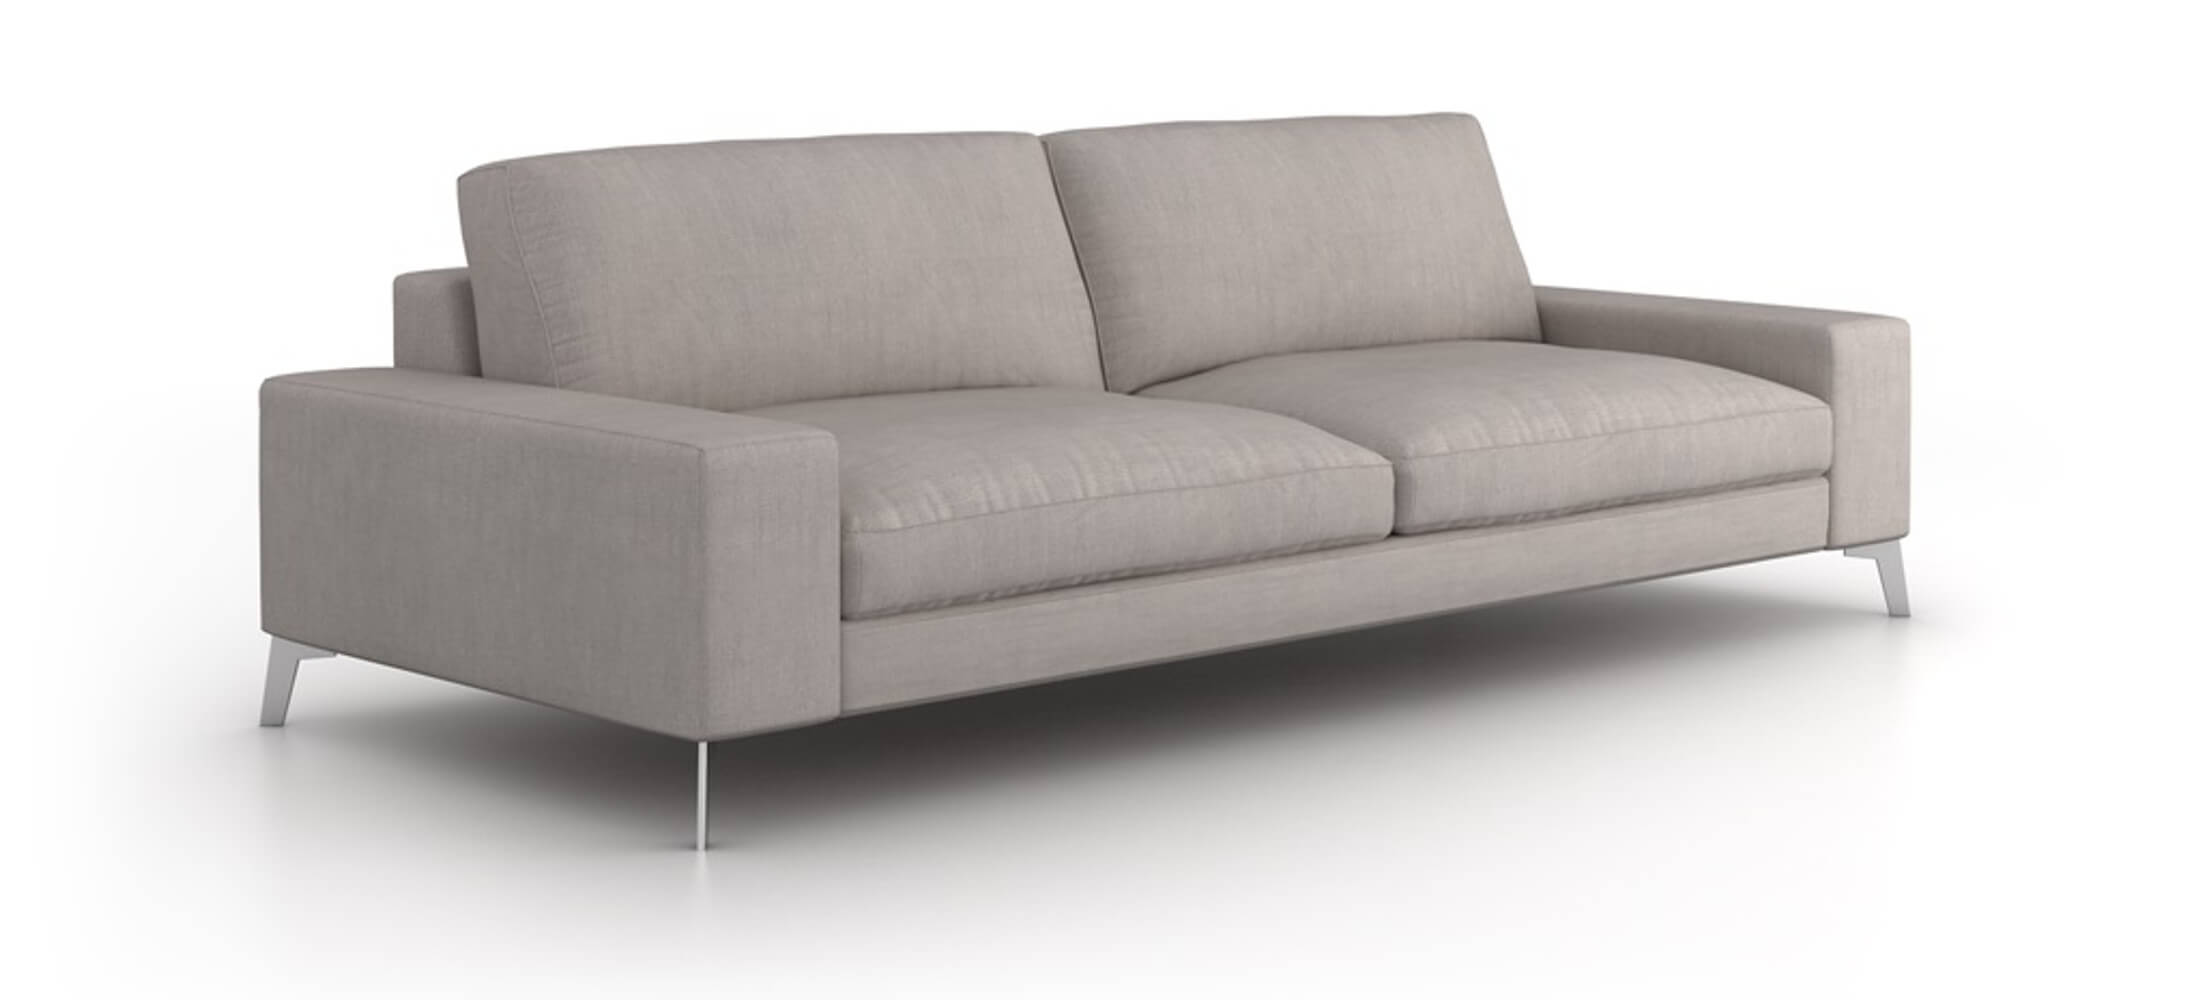 Sofa Zow - Vista lateral